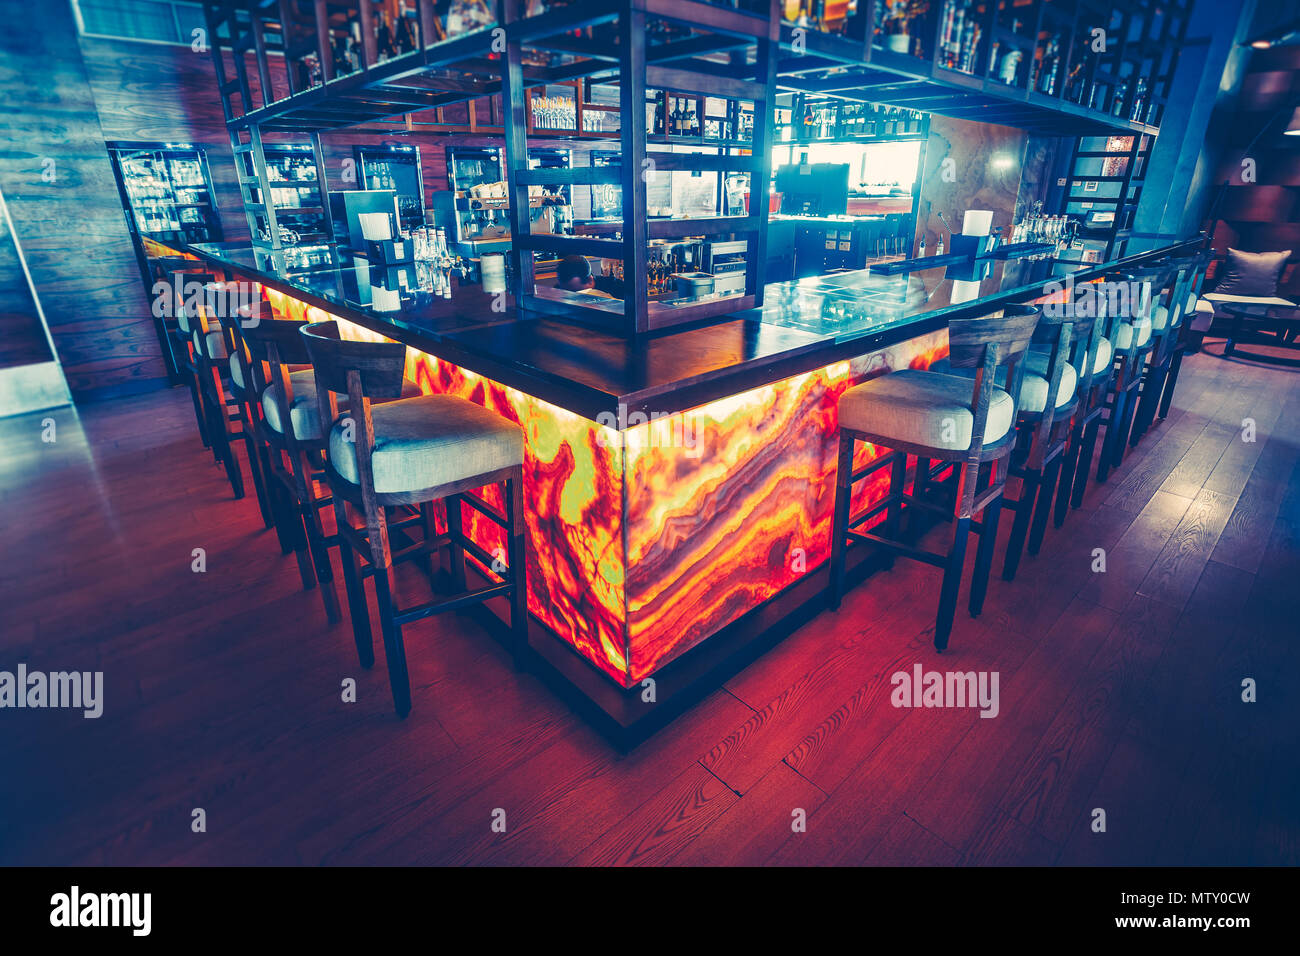 The Contemporary Bar Counter With The Equipment And The Comfortable Bar Chairs In The Modern Restaurant Stylish Inside Decor The Dark Blue And Red Color Combination Stock Photo Alamy